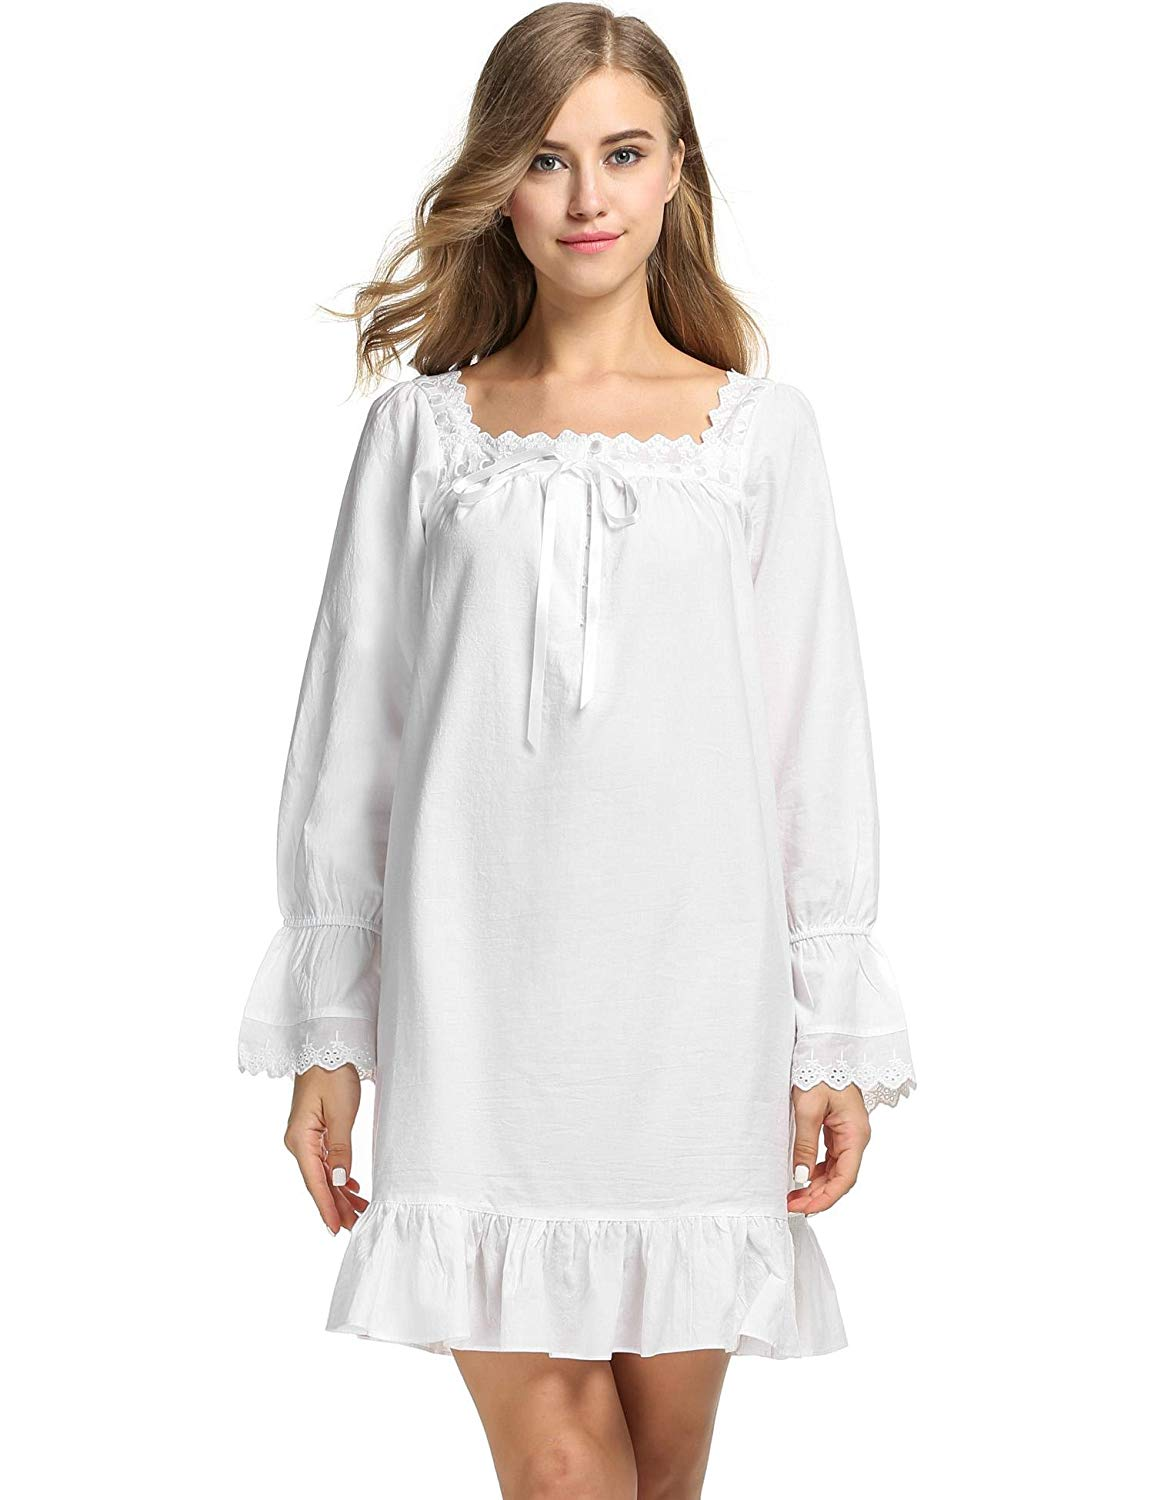 Get Quotations · Dickin Loose Nightgowns White Cotton Nightgowns Might  sleepweaer for Girls Nightgowns   Sleepshirts 13b64864e